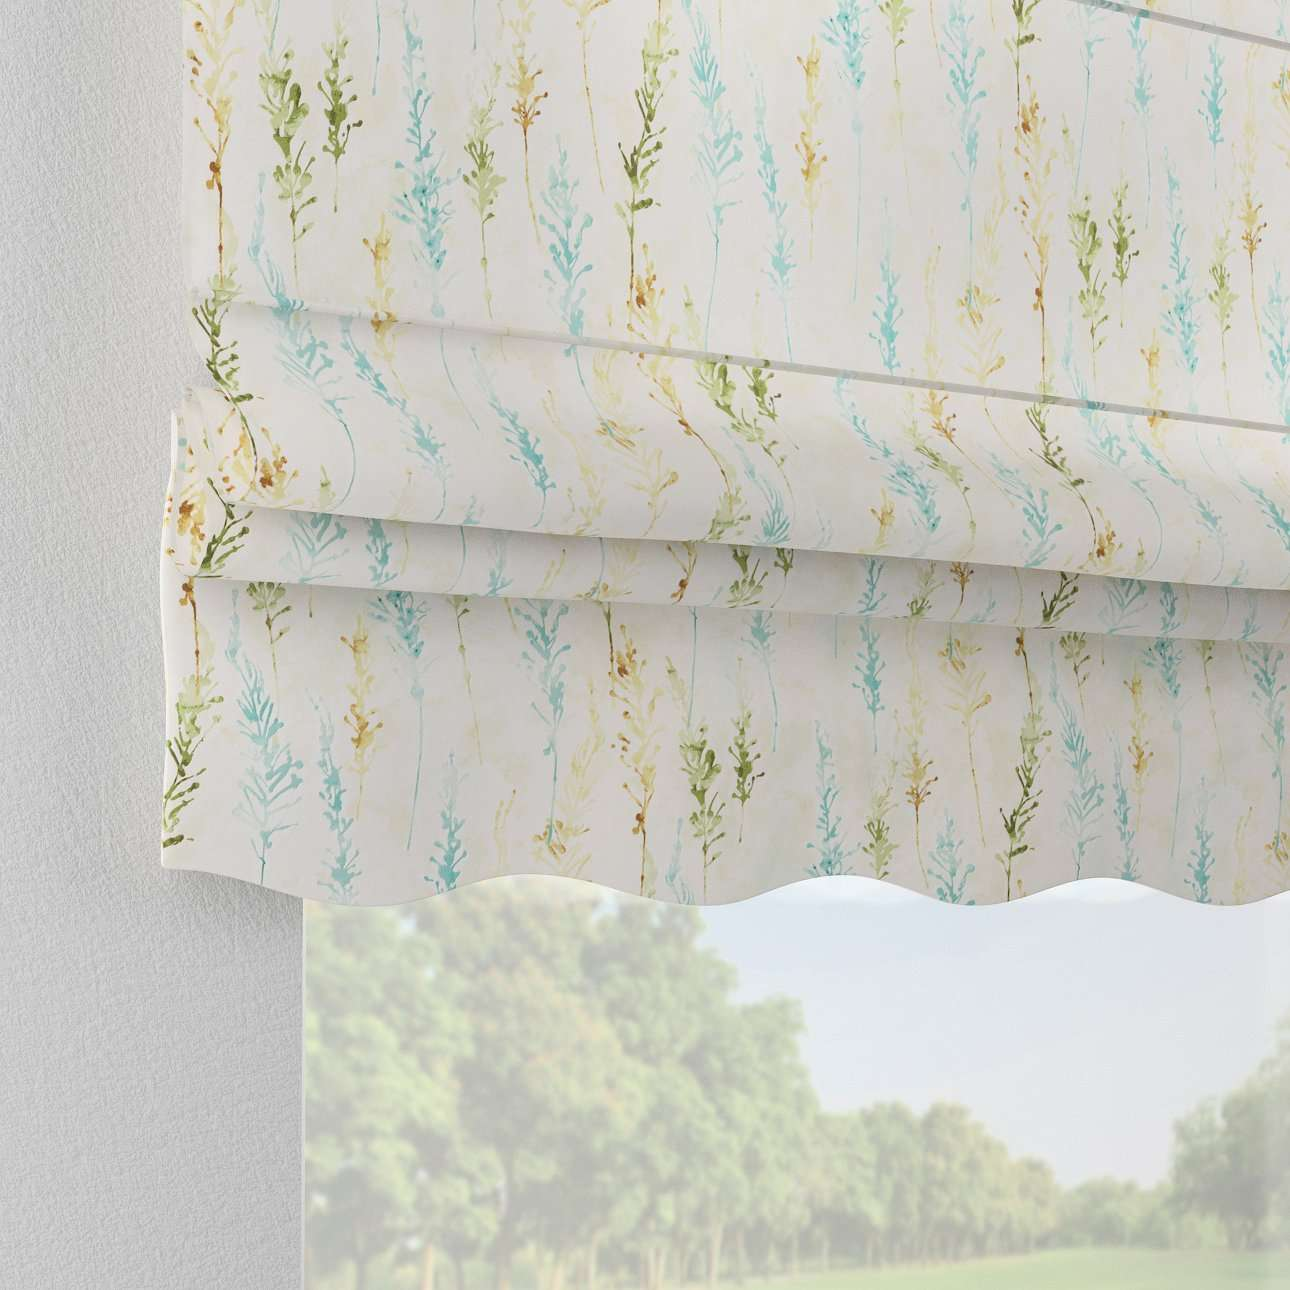 Florence roman blind  80 x 170 cm (31.5 x 67 inch) in collection Acapulco, fabric: 141-38